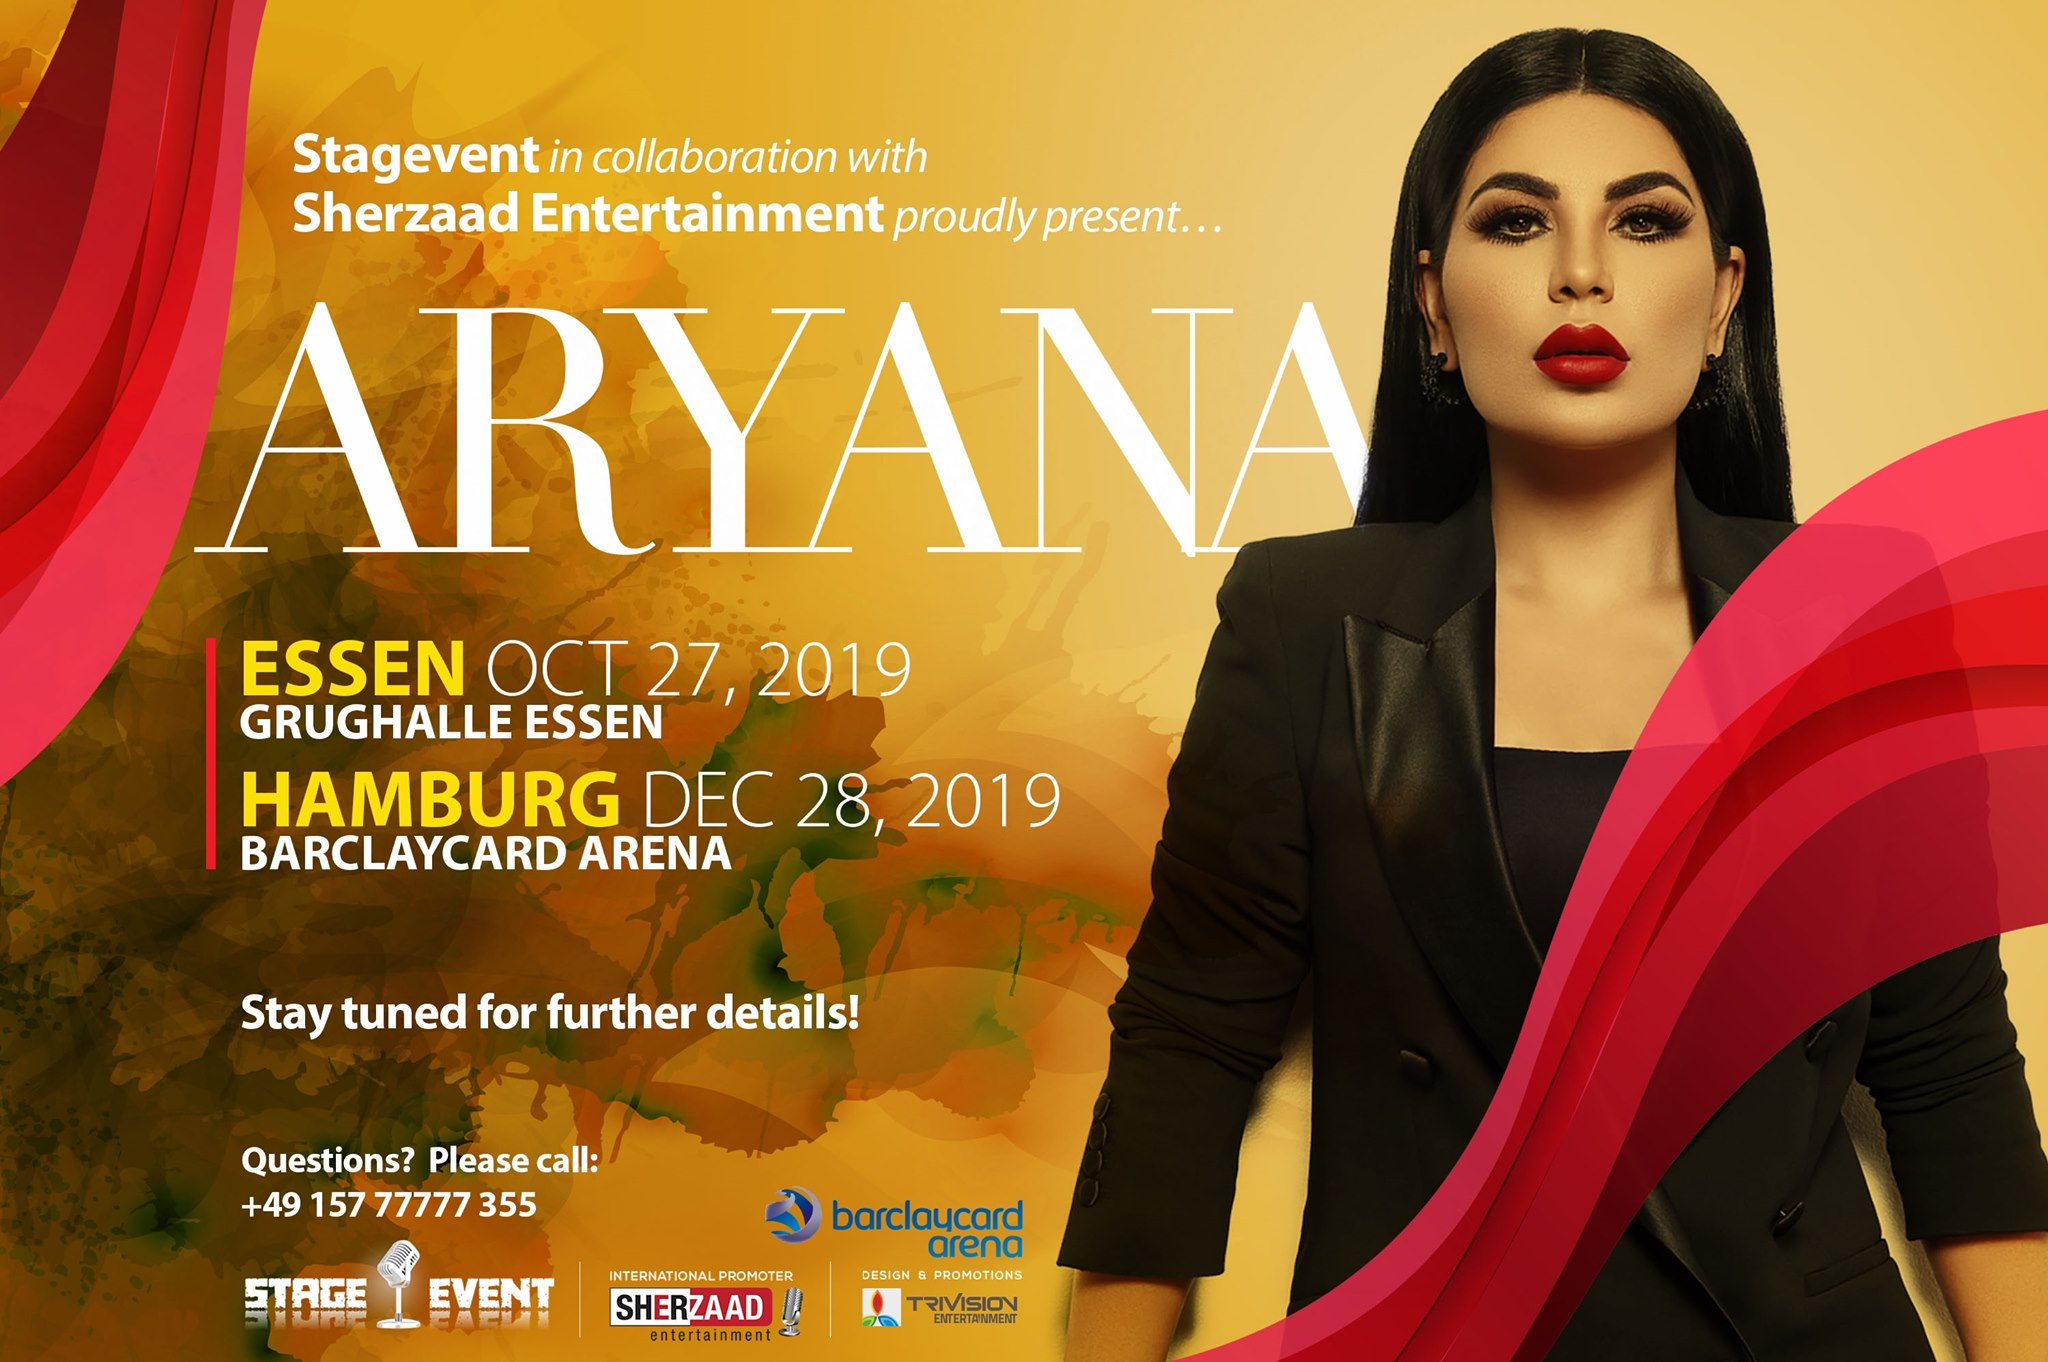 Afghan Concerts and Events